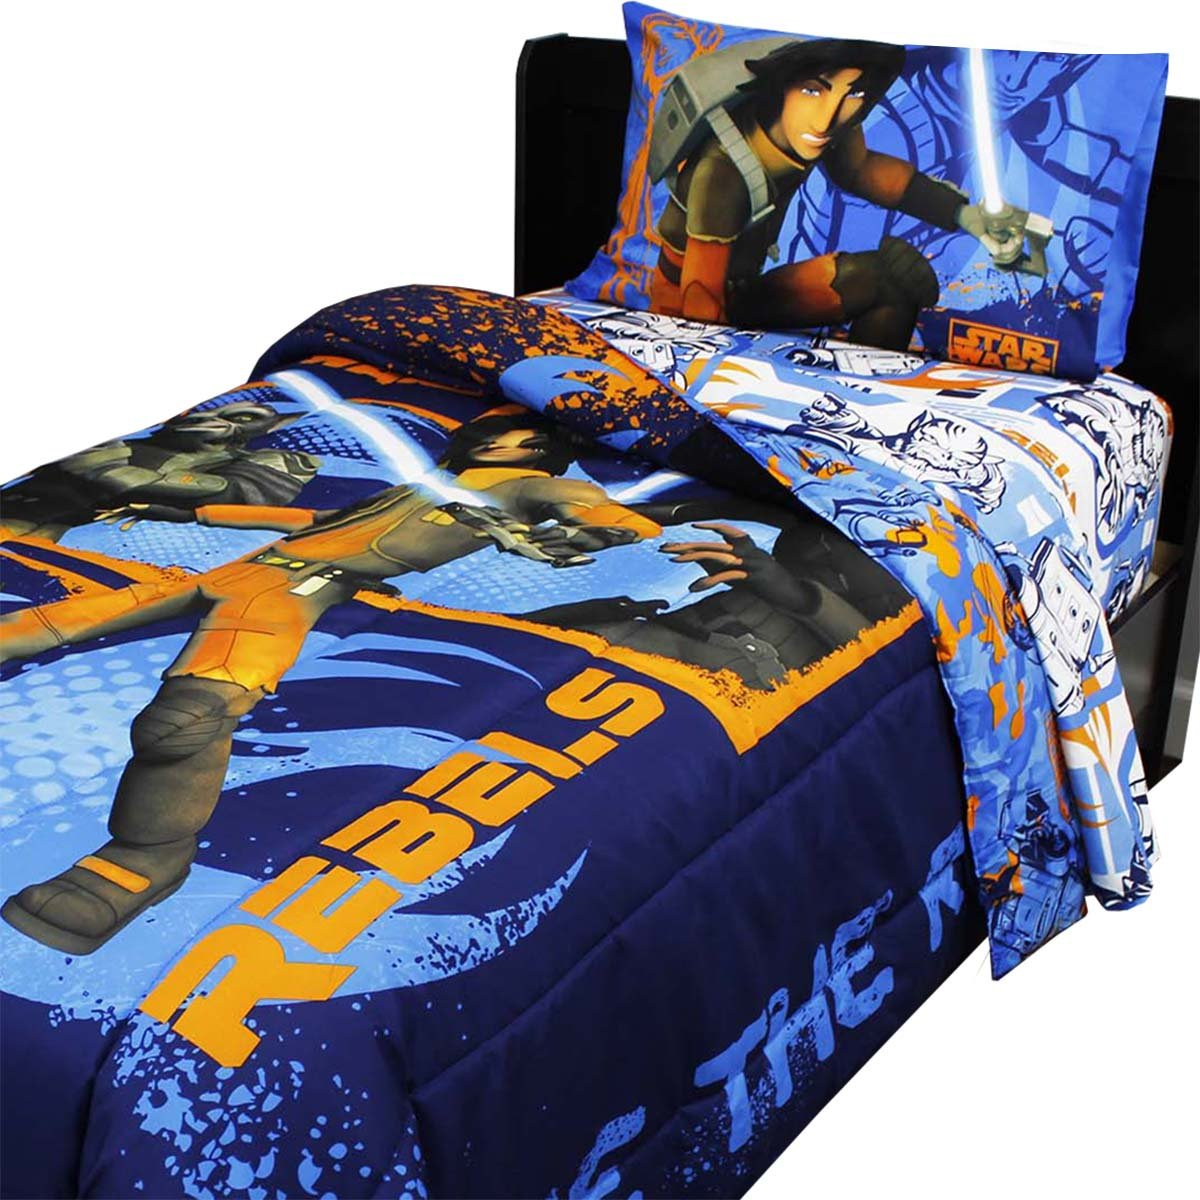 4pc Star Wars Twin Bedding Set Rebels Fight Comforter and Sheet Set